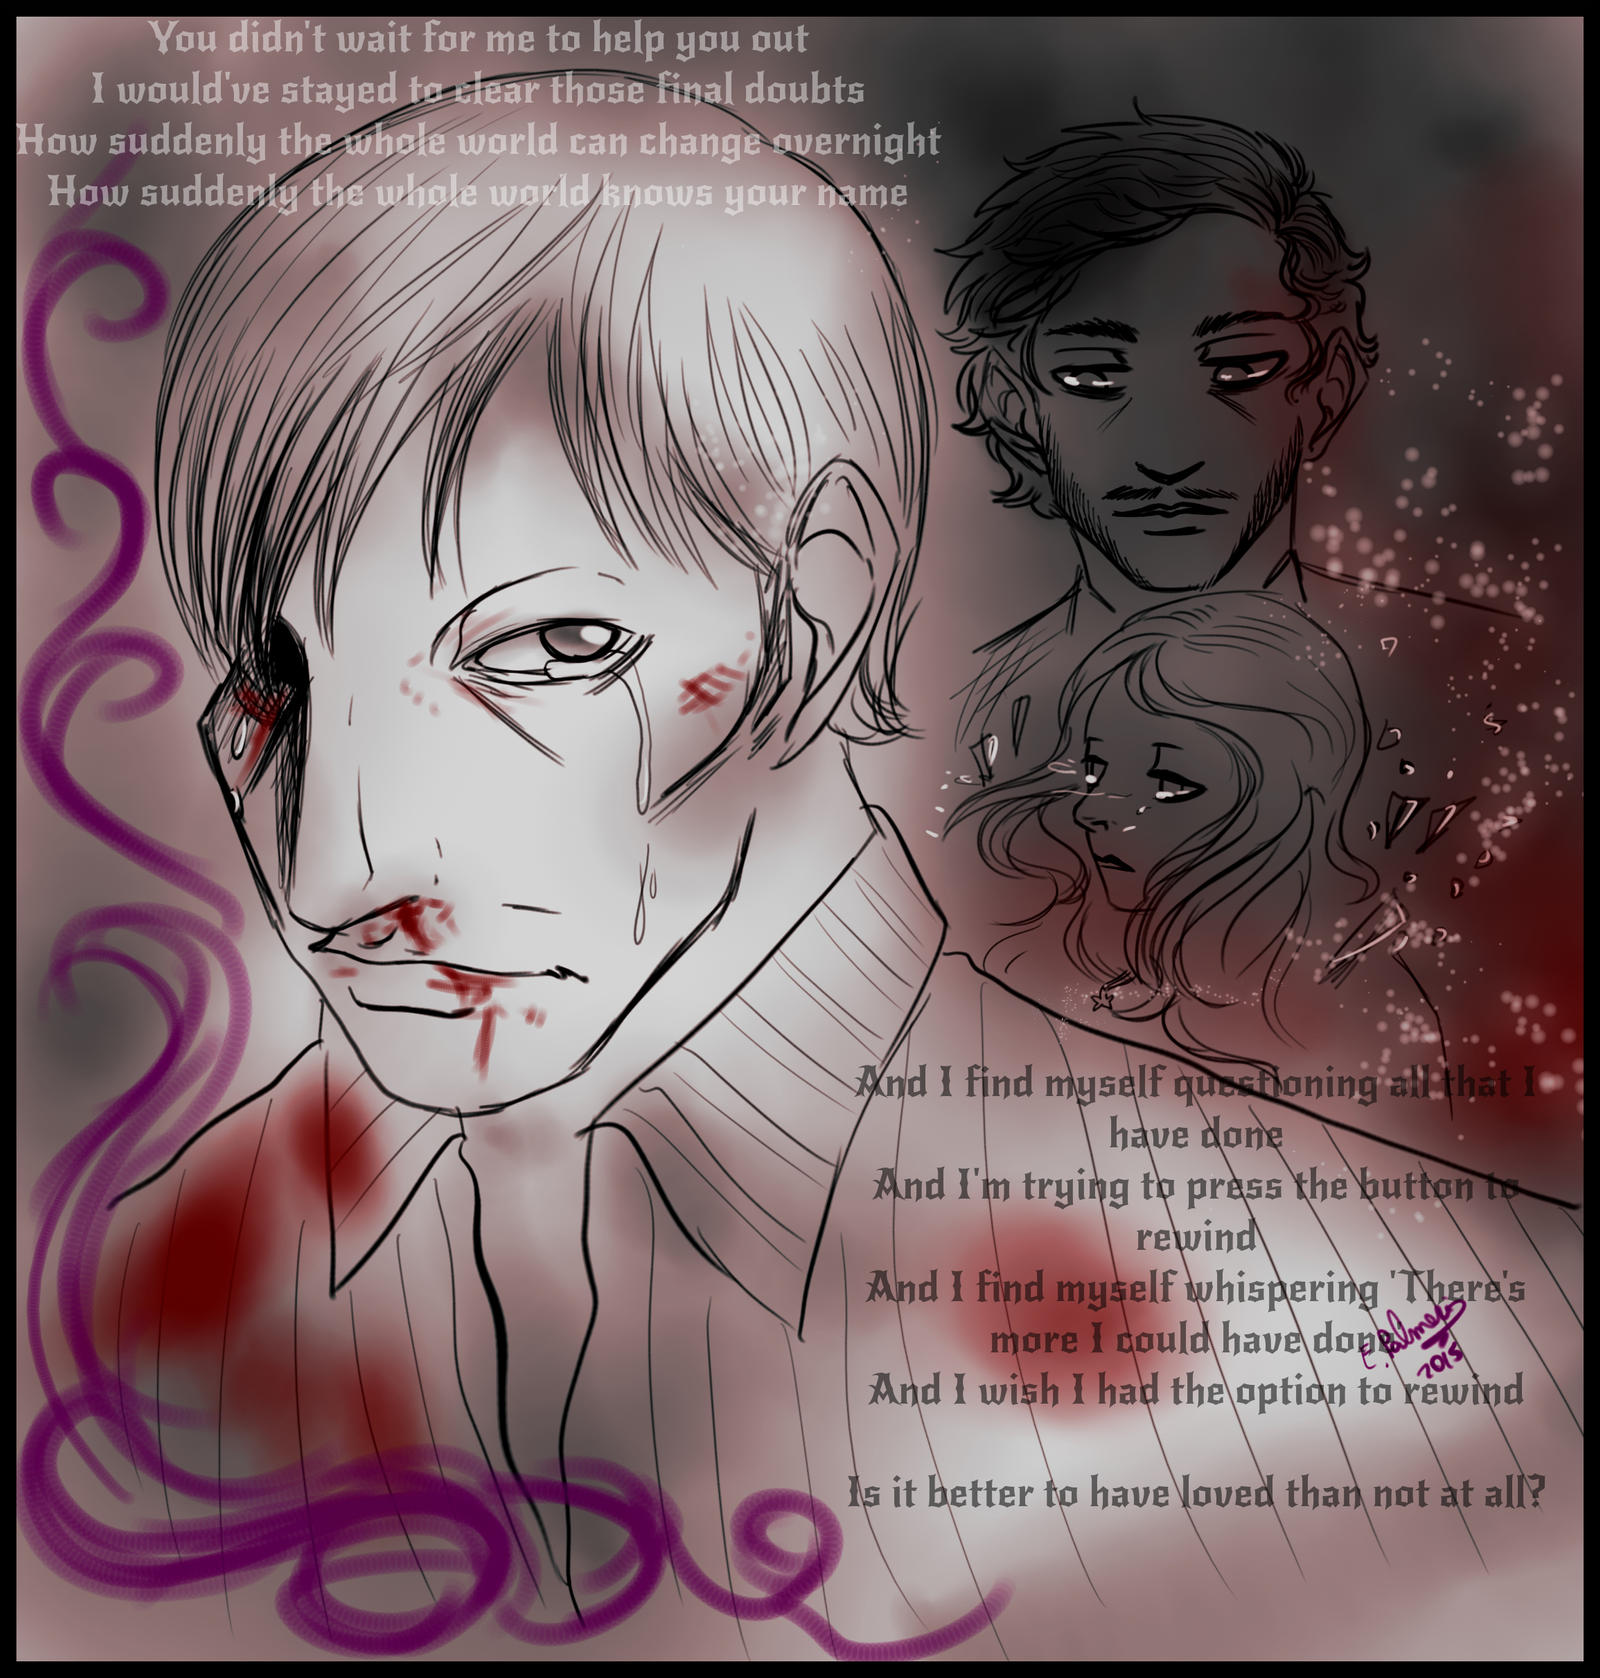 Hannibal - It is bettere to have loved by FuriarossaAndMimma